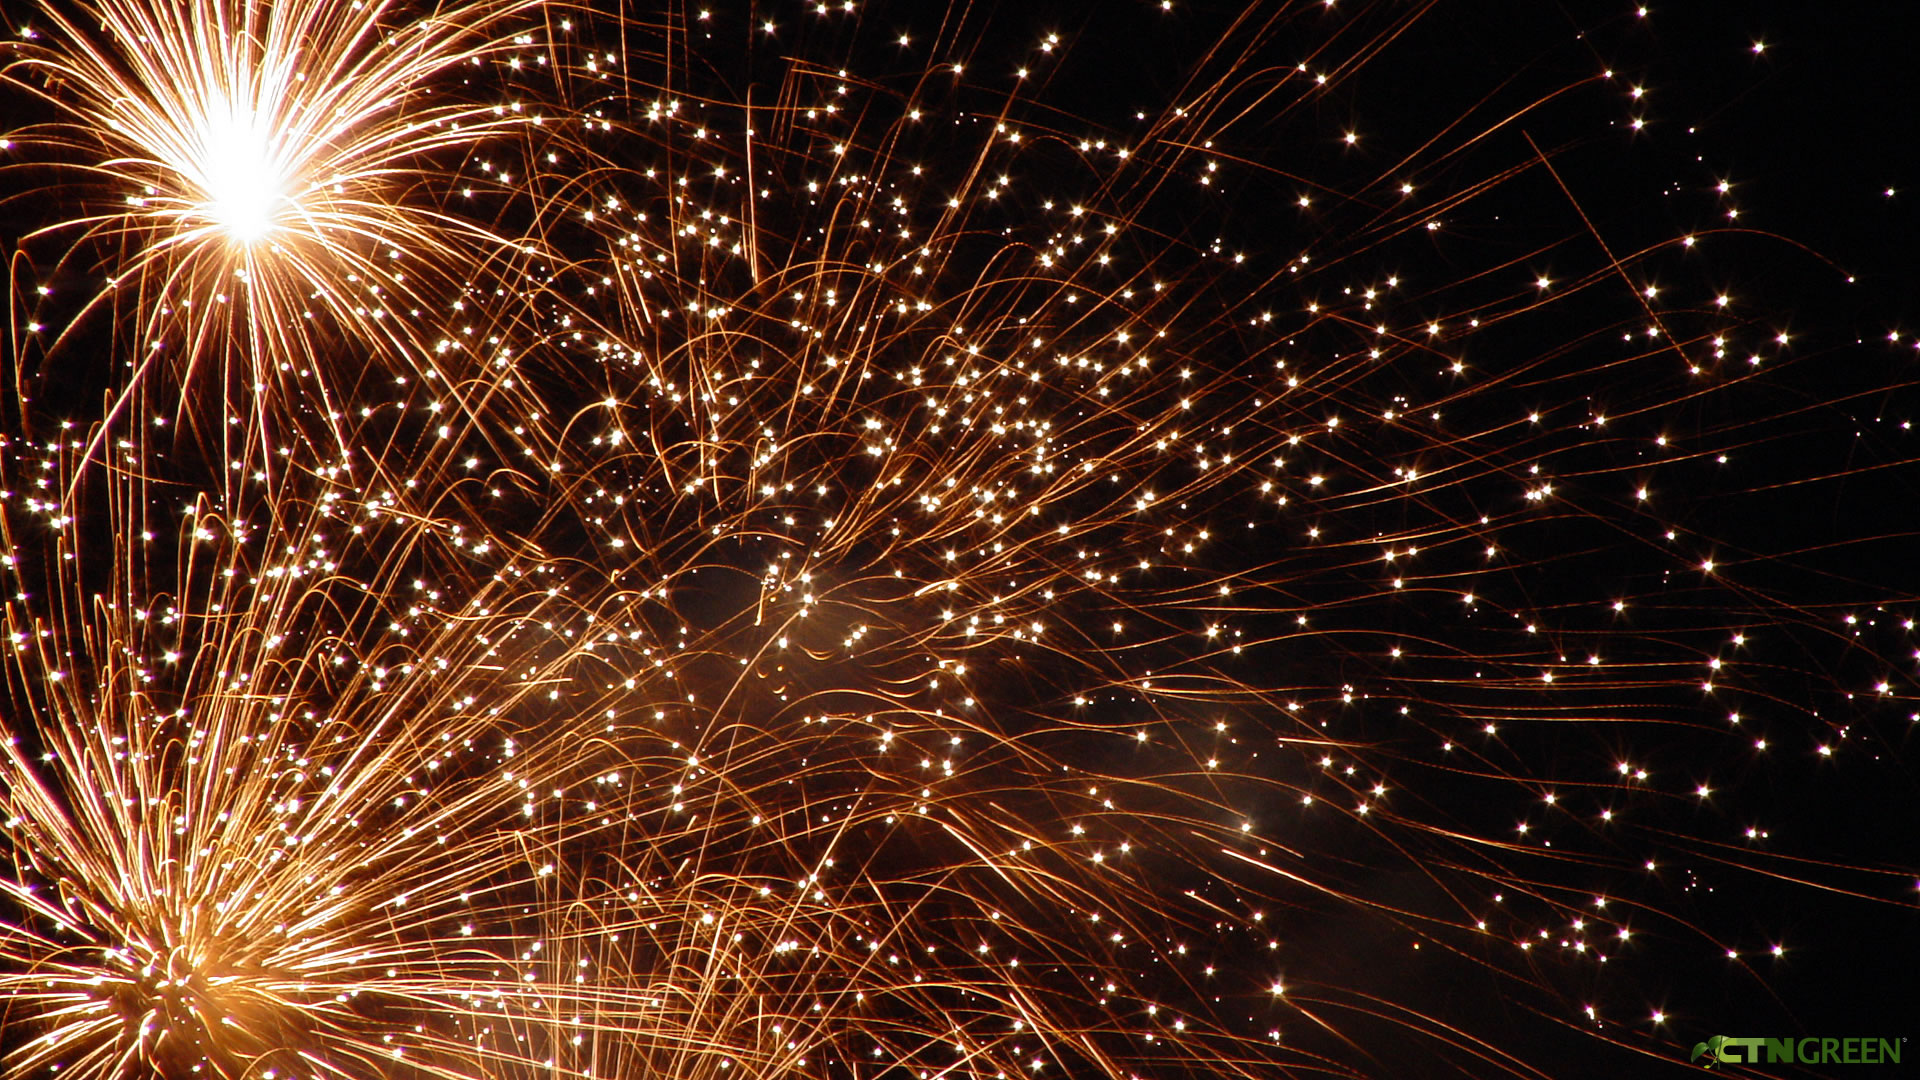 Fireworks HD Picture Backgrounds